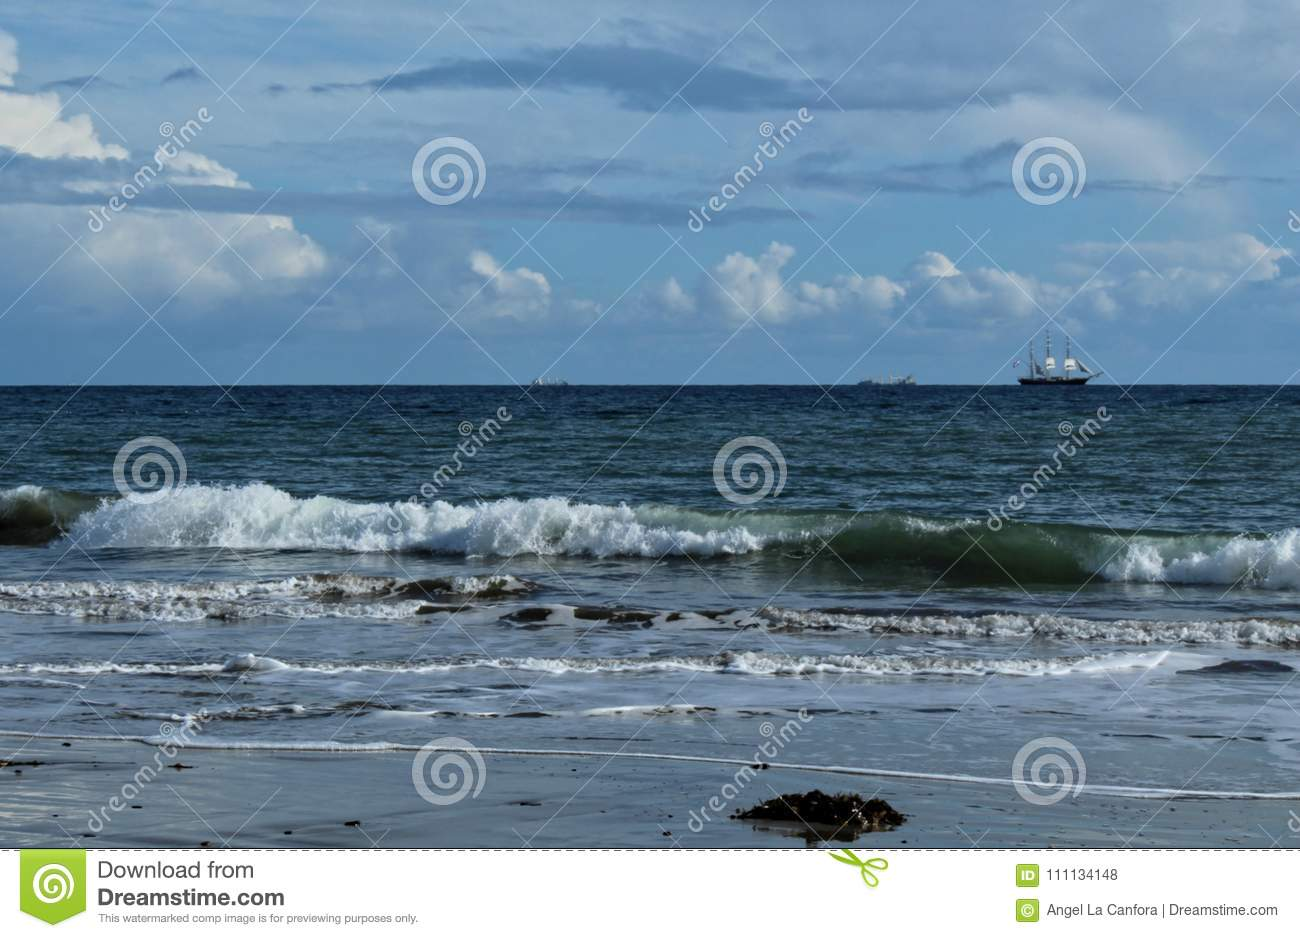 Cabrillo Beach, View of Tall Ship Sailing in the Distance, Los Angeles, California